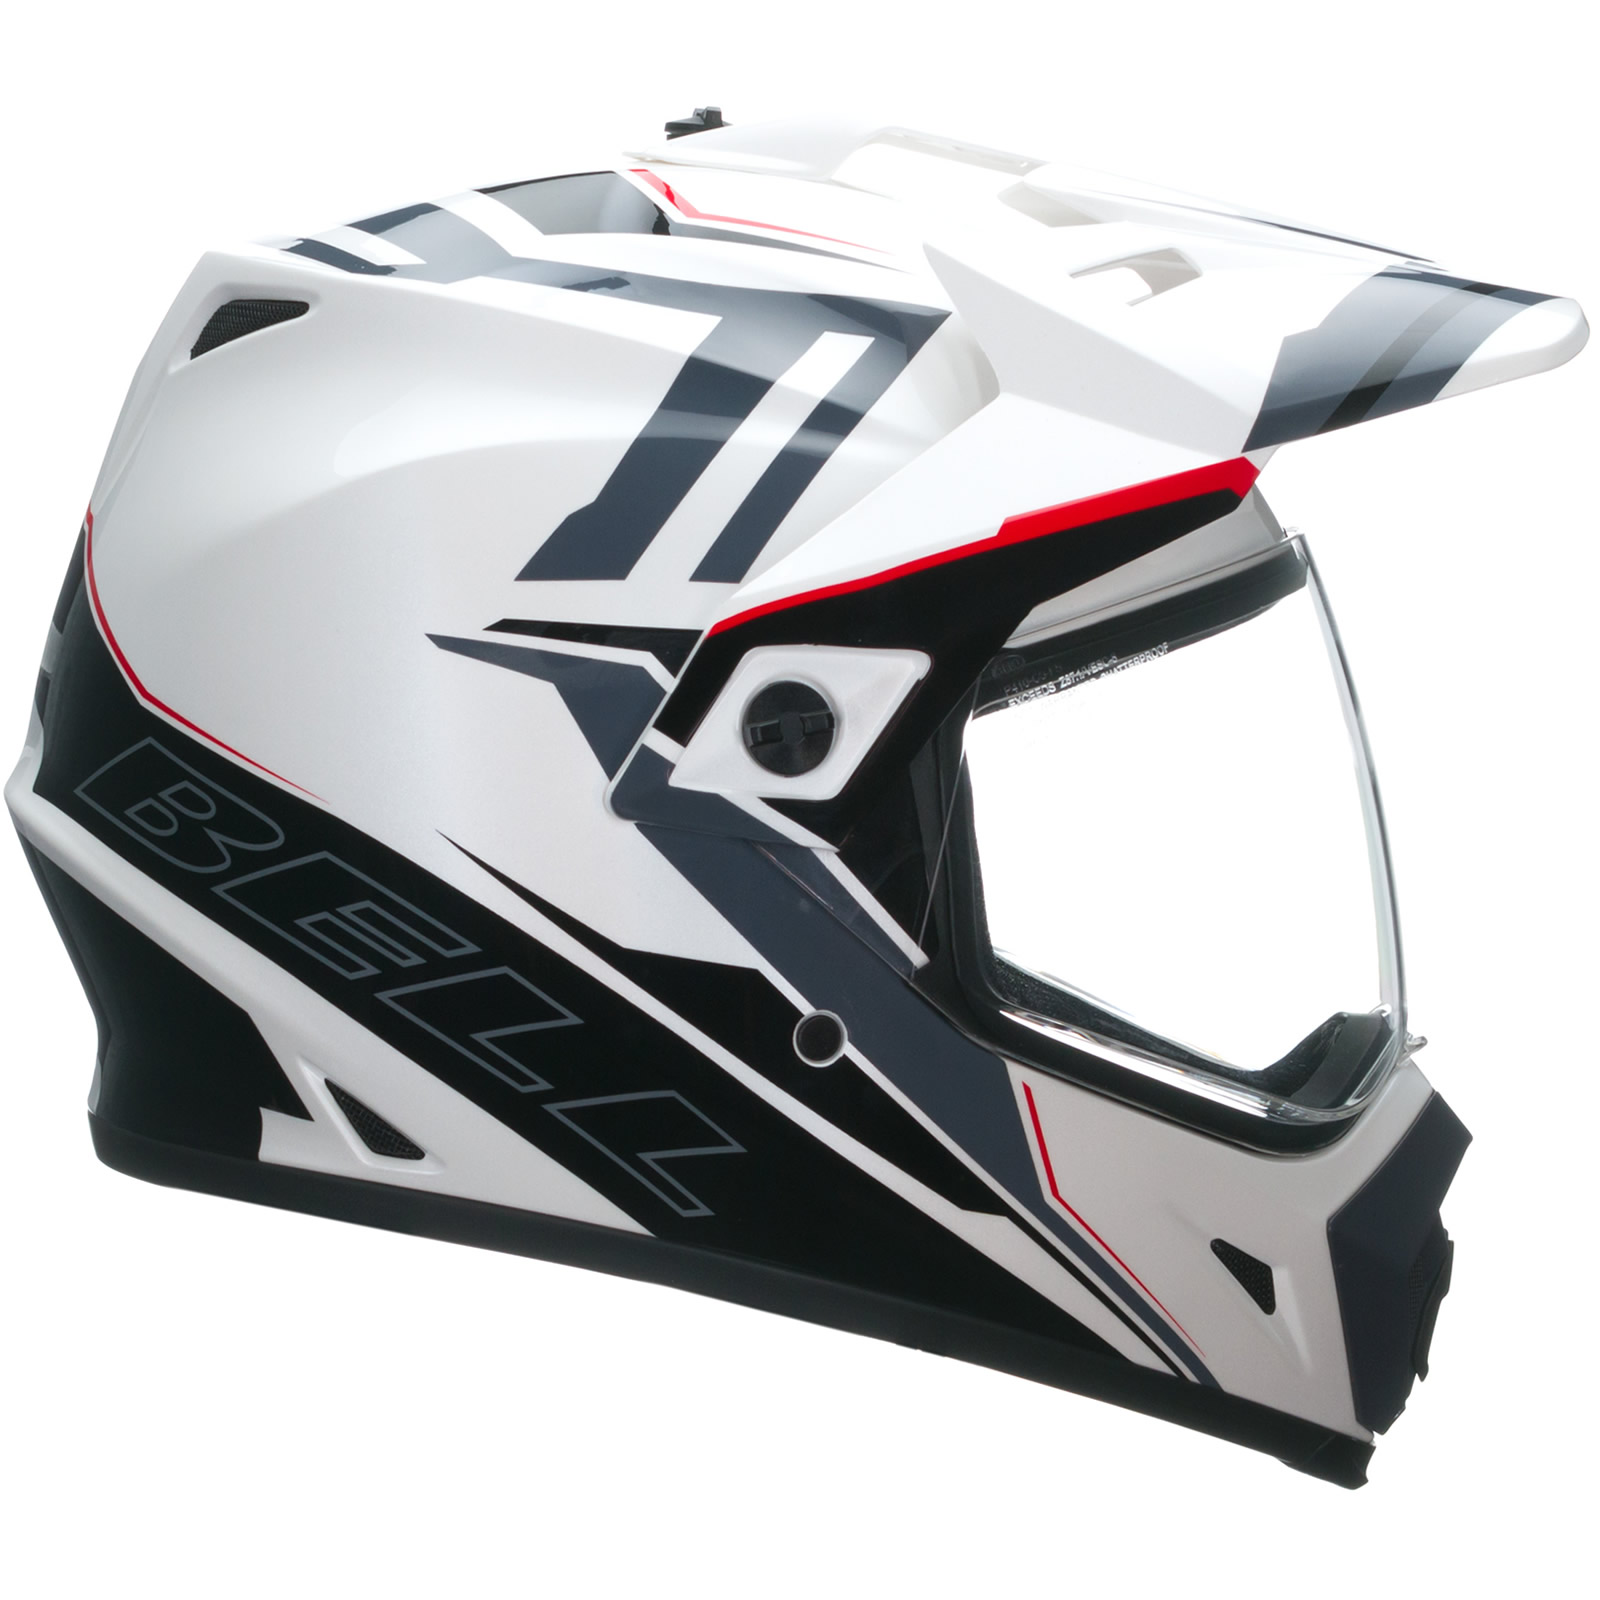 bell mx 9 adventure barricade white motocross helmet mx cross motox enduro quad ebay. Black Bedroom Furniture Sets. Home Design Ideas